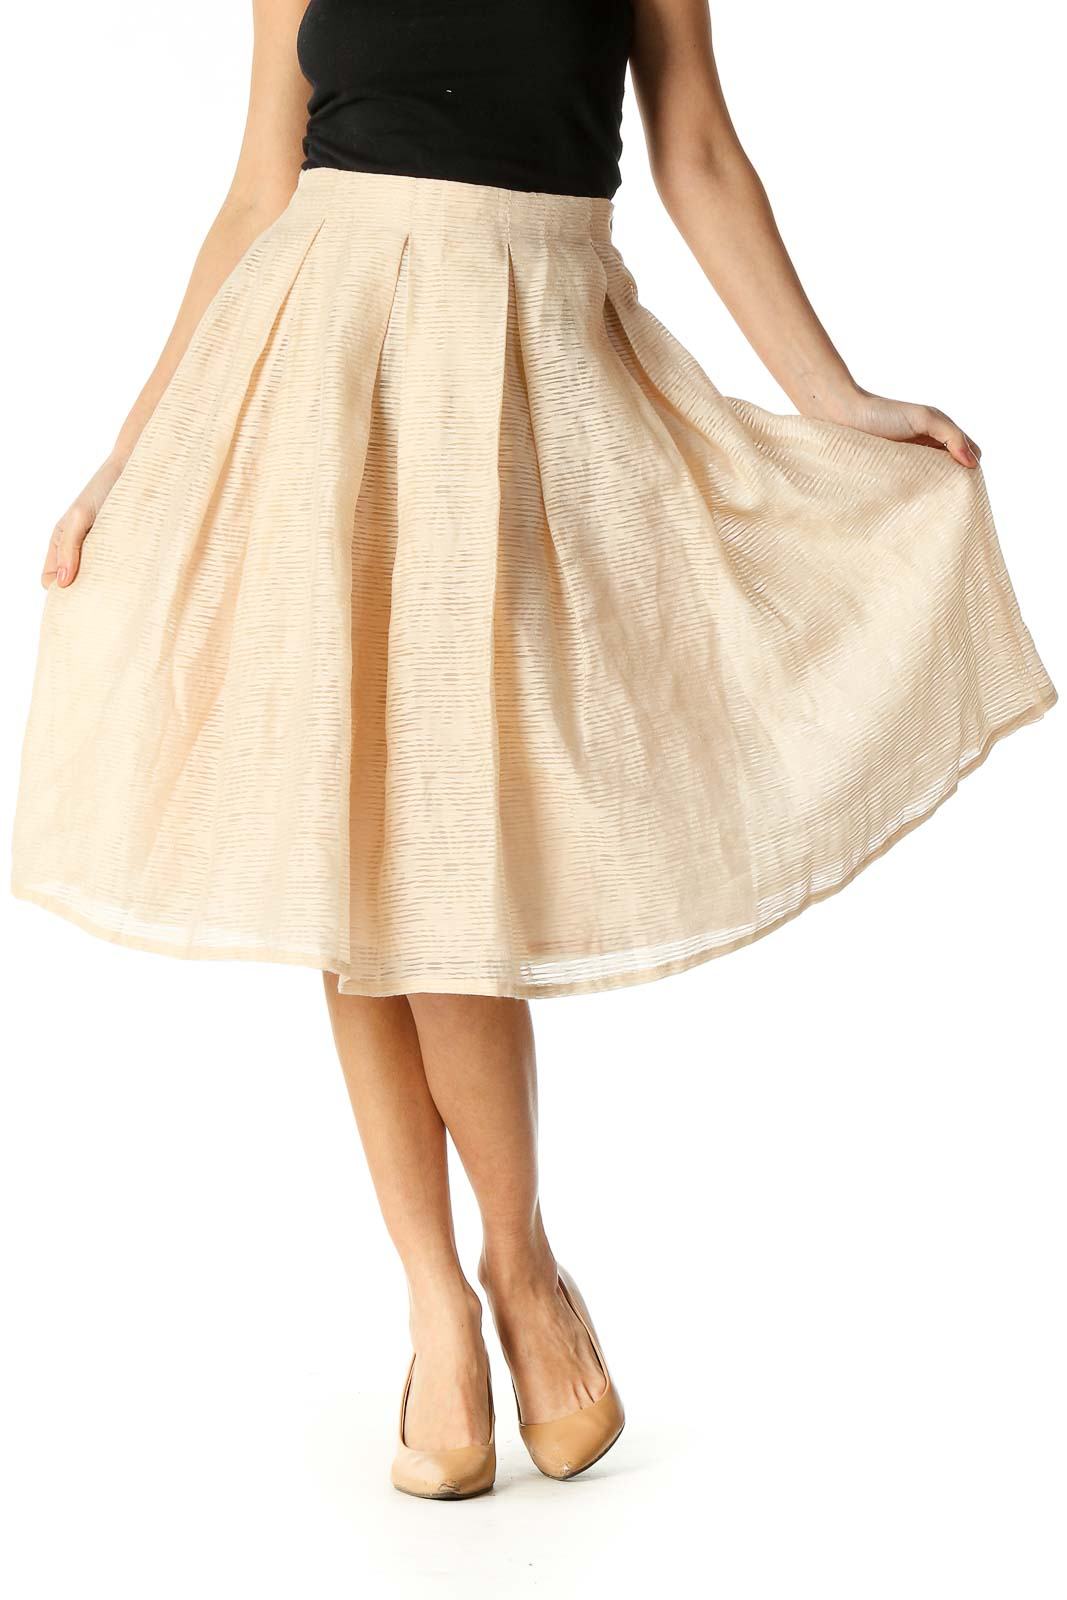 Beige Texture Chic Pleated Skirt Front